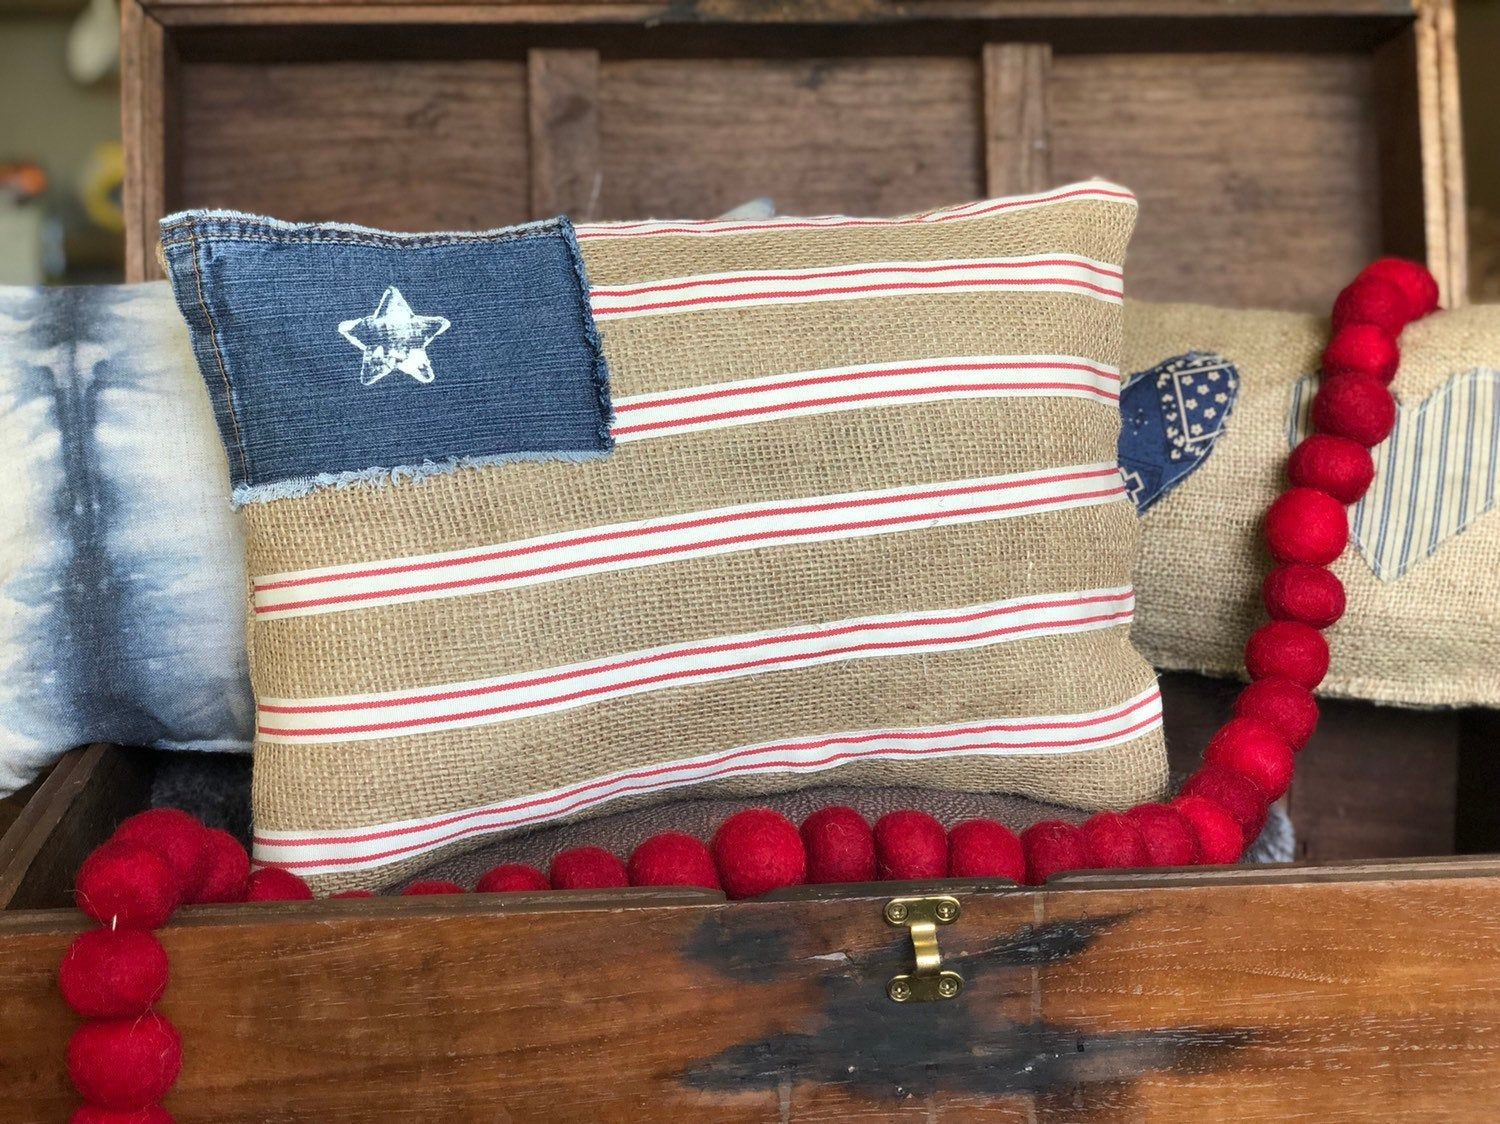 4th Of July Flag Pillow Farmhouse Decor Burlap Jeans Pillow Fourth Of July Decorations American Americana Home Decor Bench Decor Fourth Of July Decorations